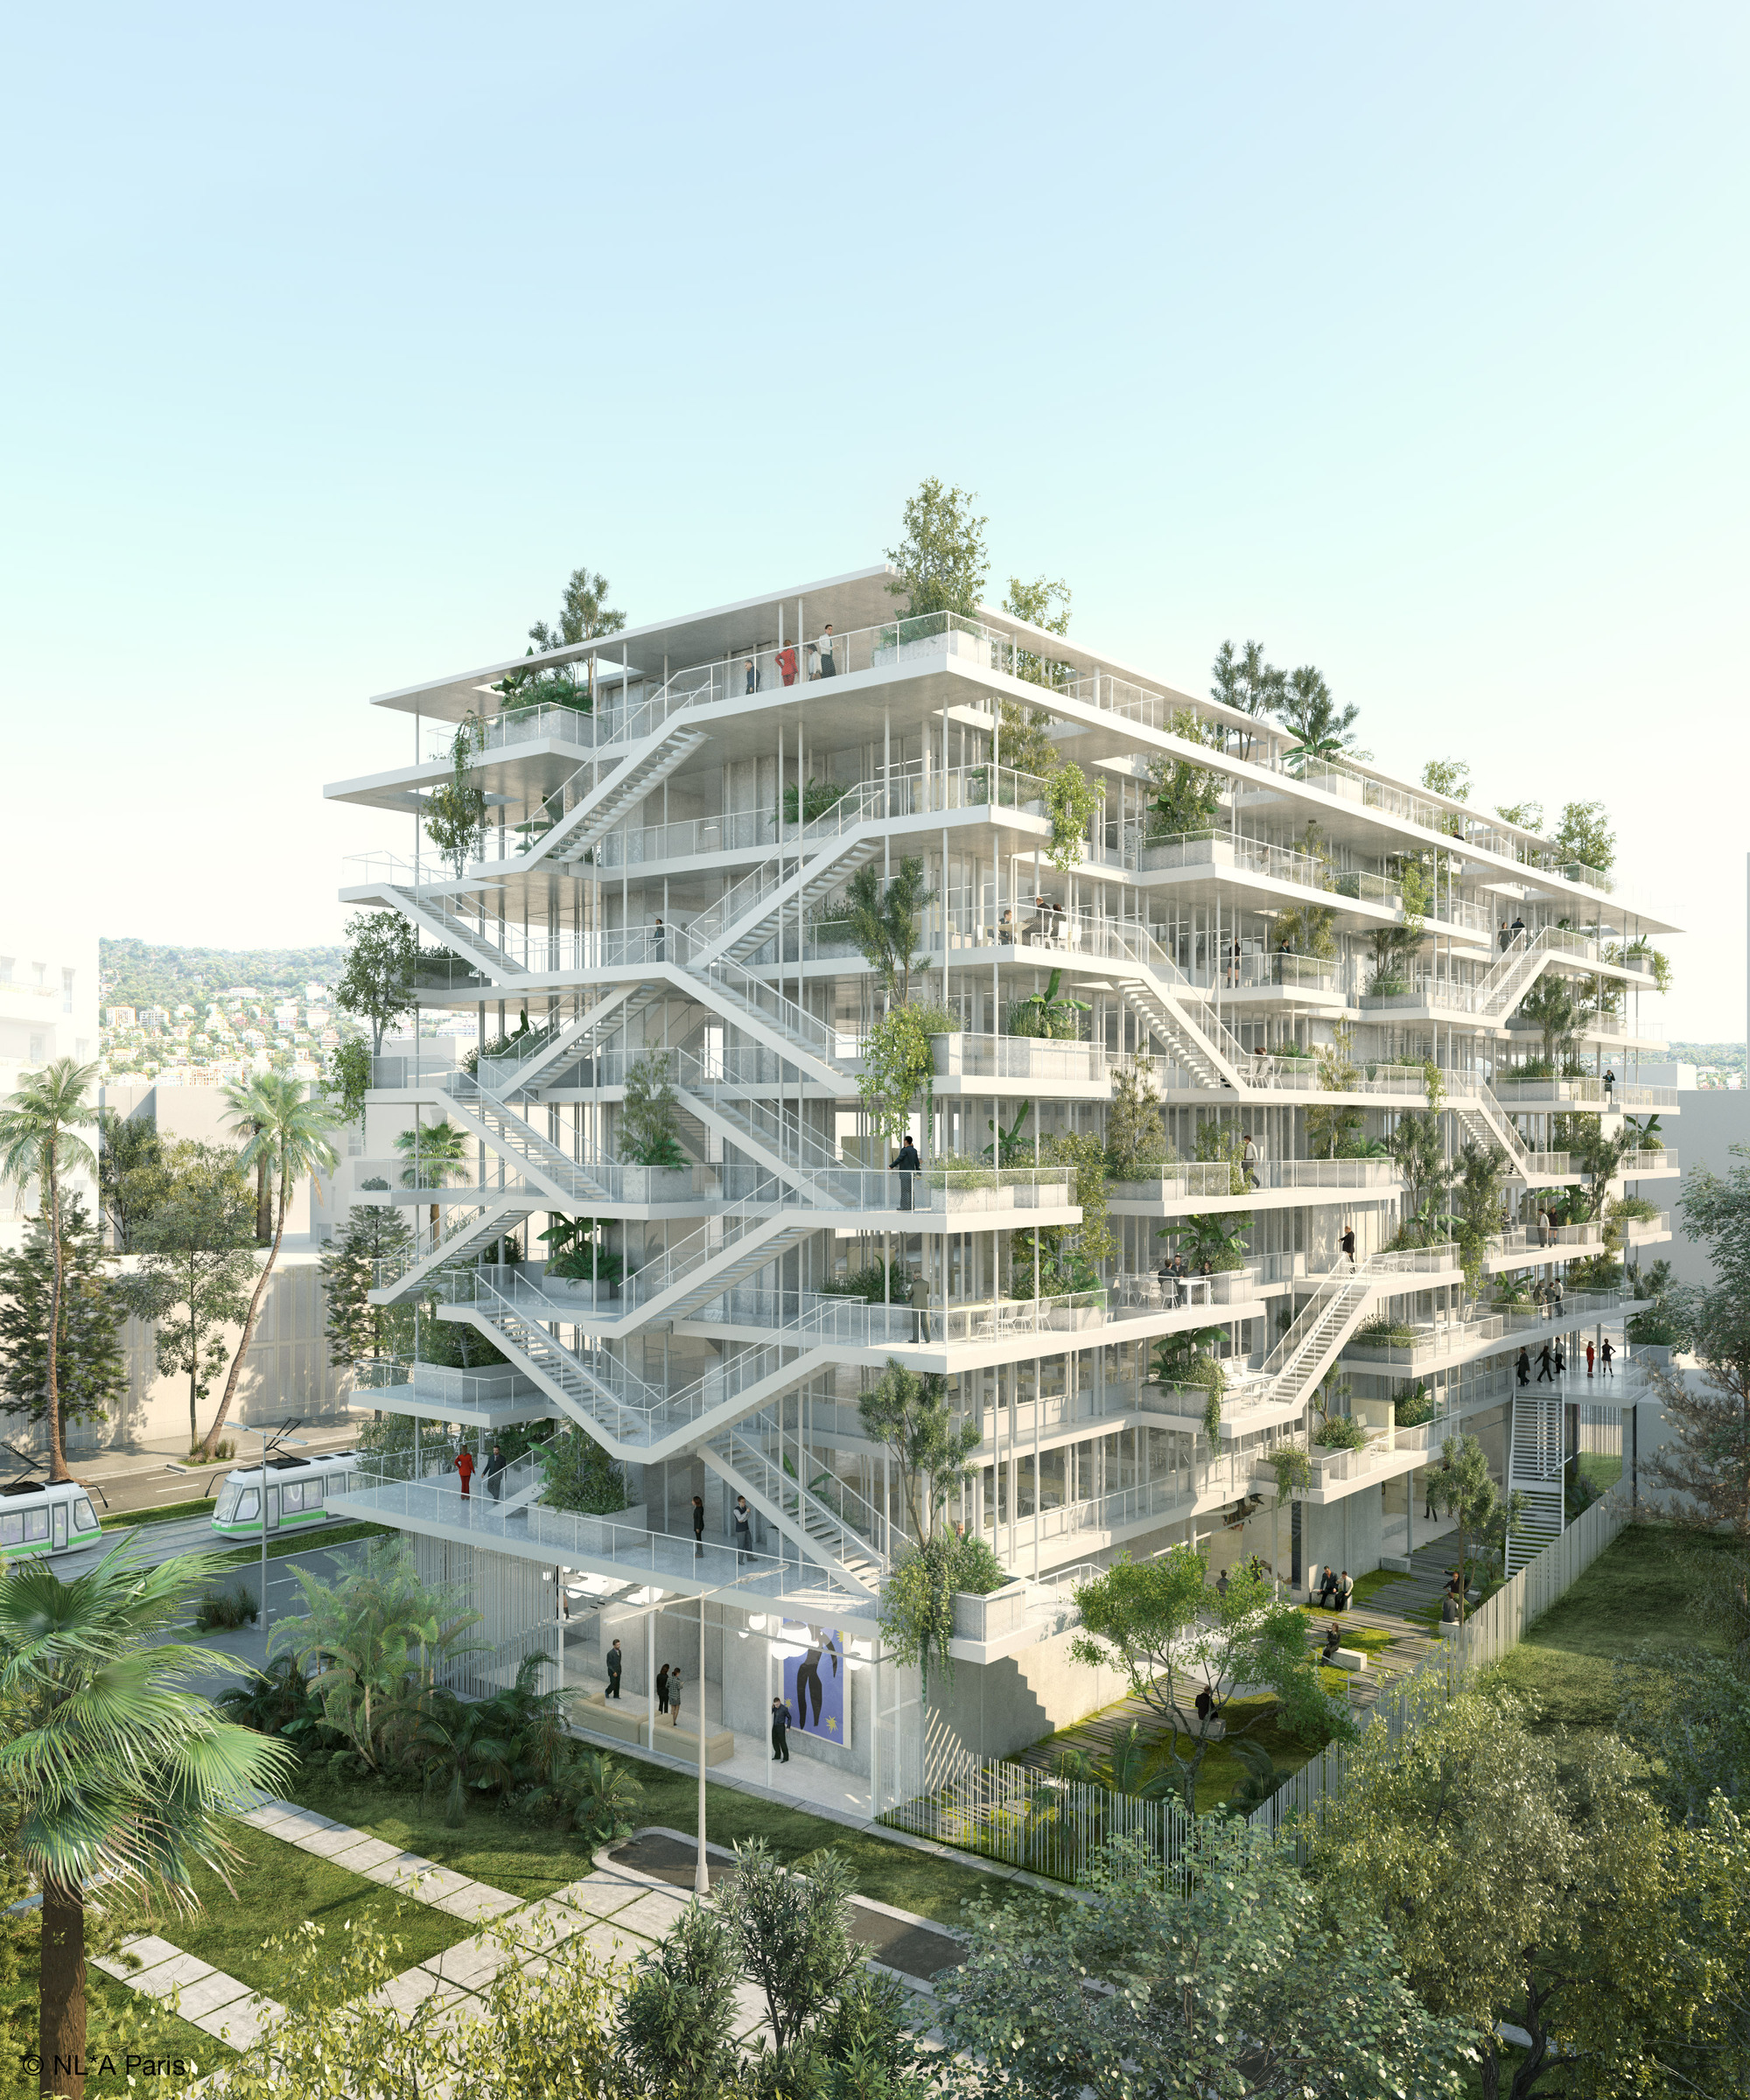 NL*A Reveals Plans For Open-Concept Green Office Building